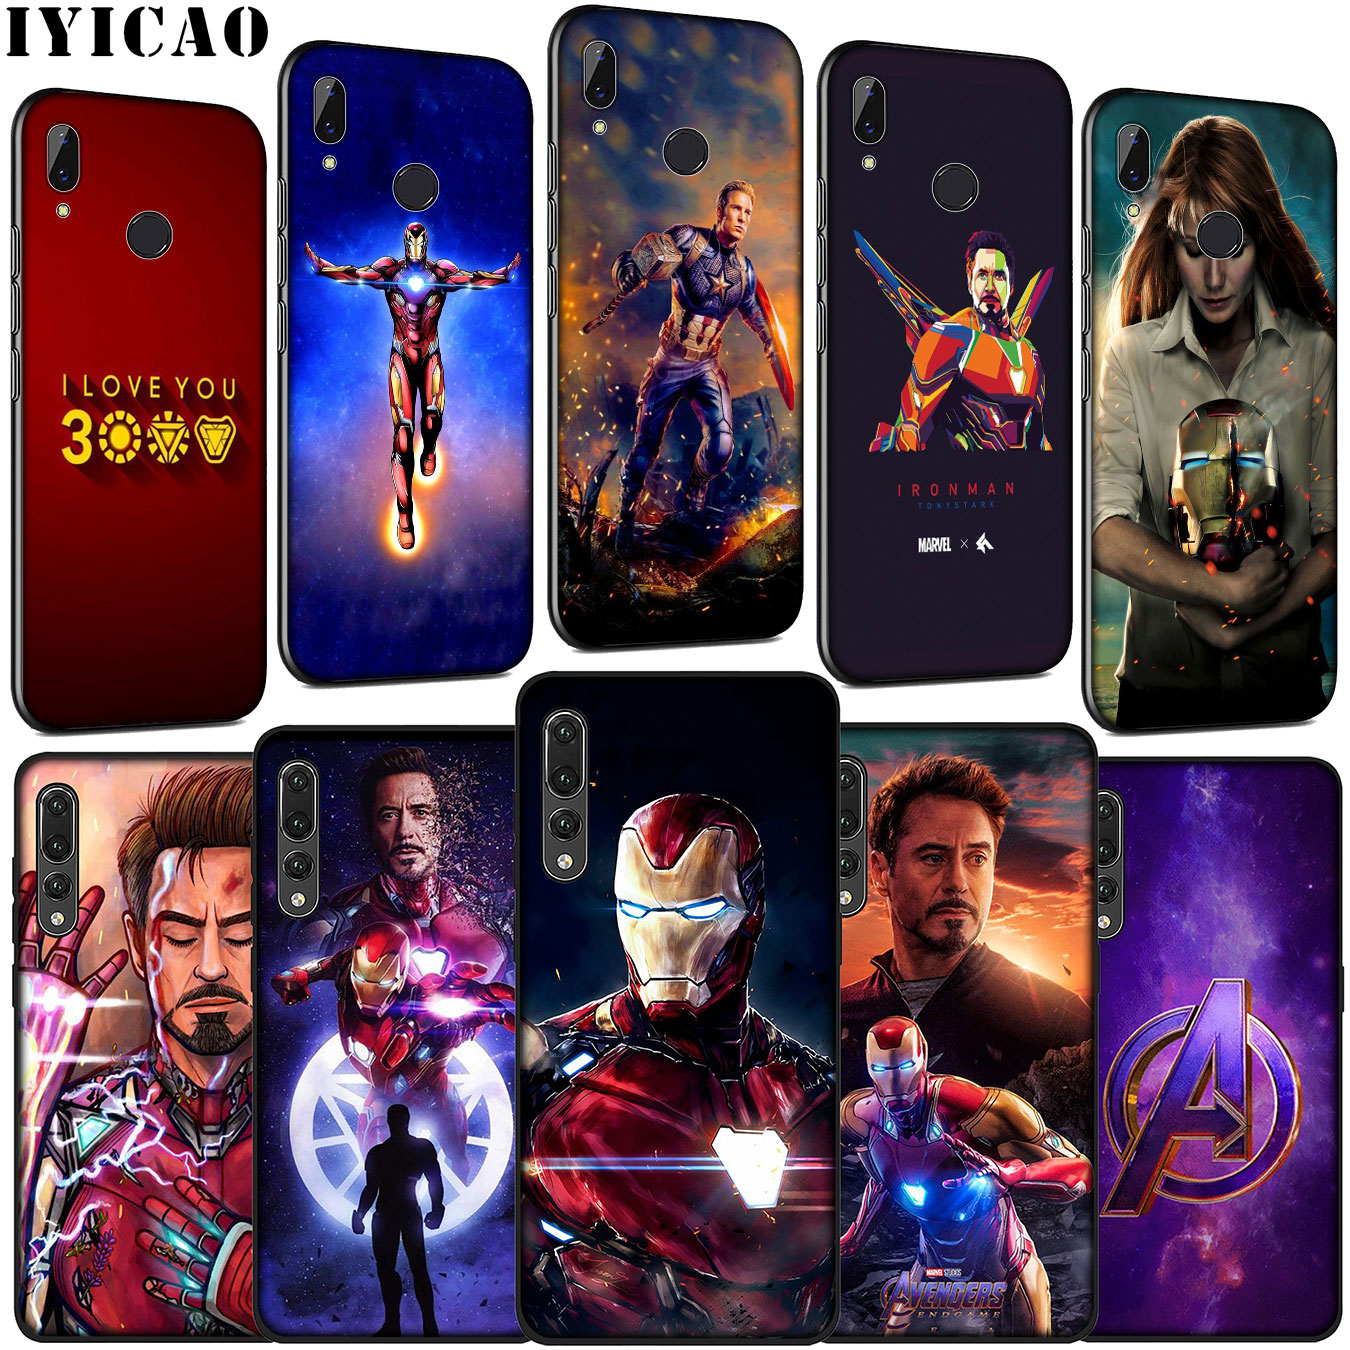 Iron Man <font><b>Marvel</b></font> IronMan Soft Silicone <font><b>Cover</b></font> Case for <font><b>Huawei</b></font> P30 P20 Pro <font><b>P10</b></font> P9 <font><b>Lite</b></font> Mini 2017 2016 P Smart Z Plus 2019 image